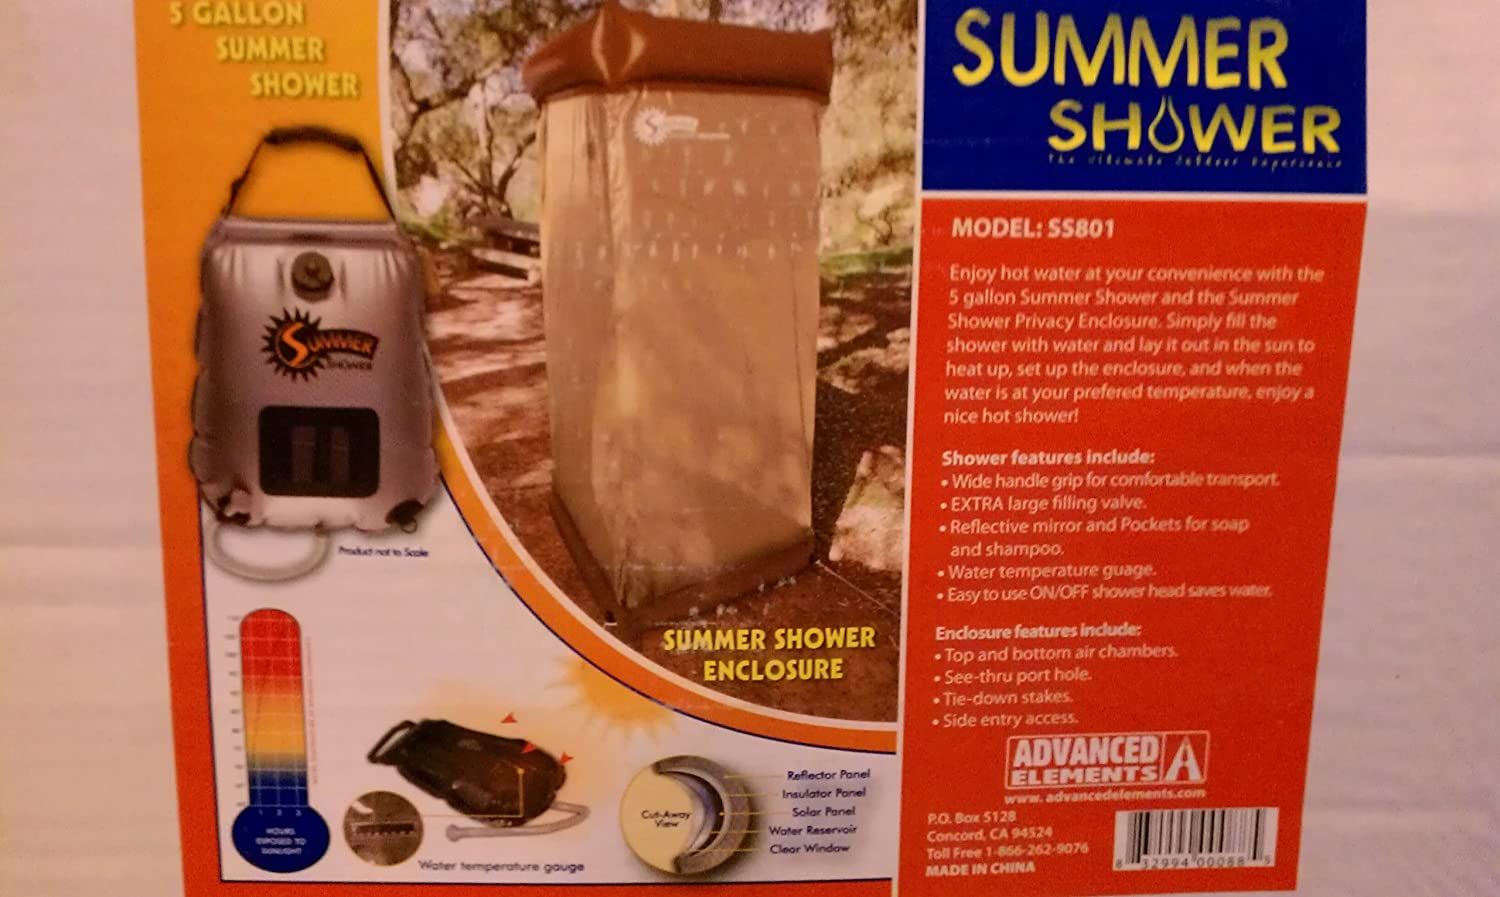 5-gallon-summer-shower-summer-shower-privacy-enclosure-combo-pack-by-advanced-elements